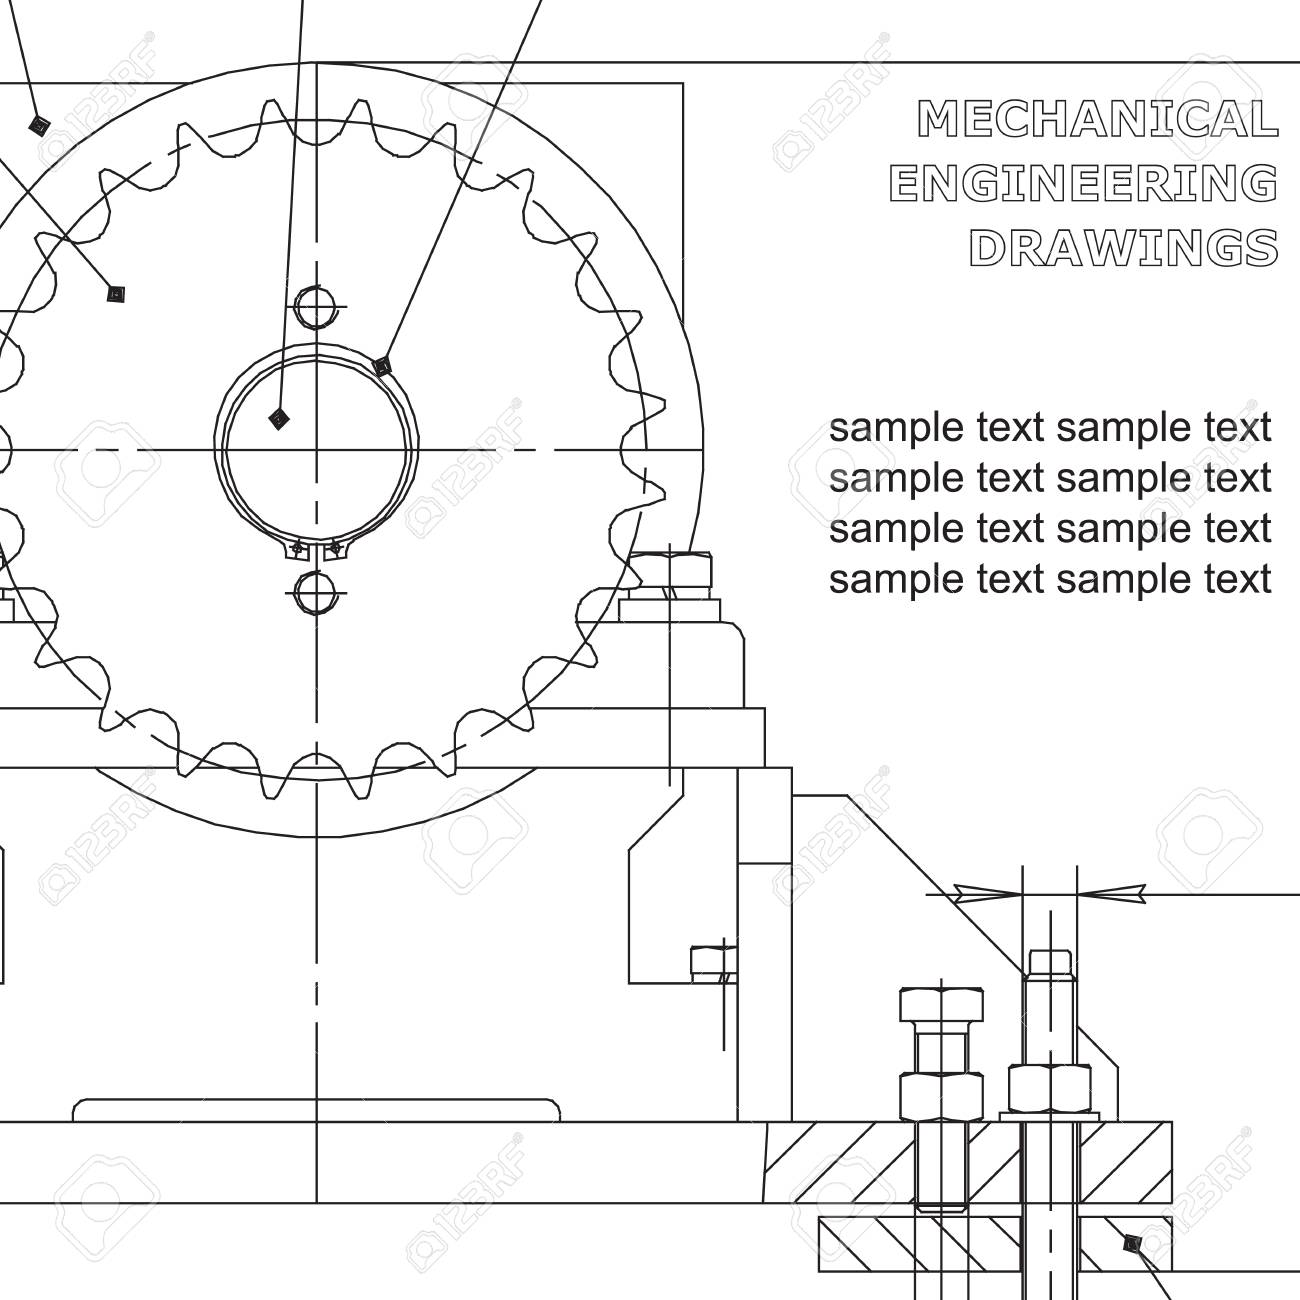 Mechanical Engineering Drawings On White Background. Vector ...